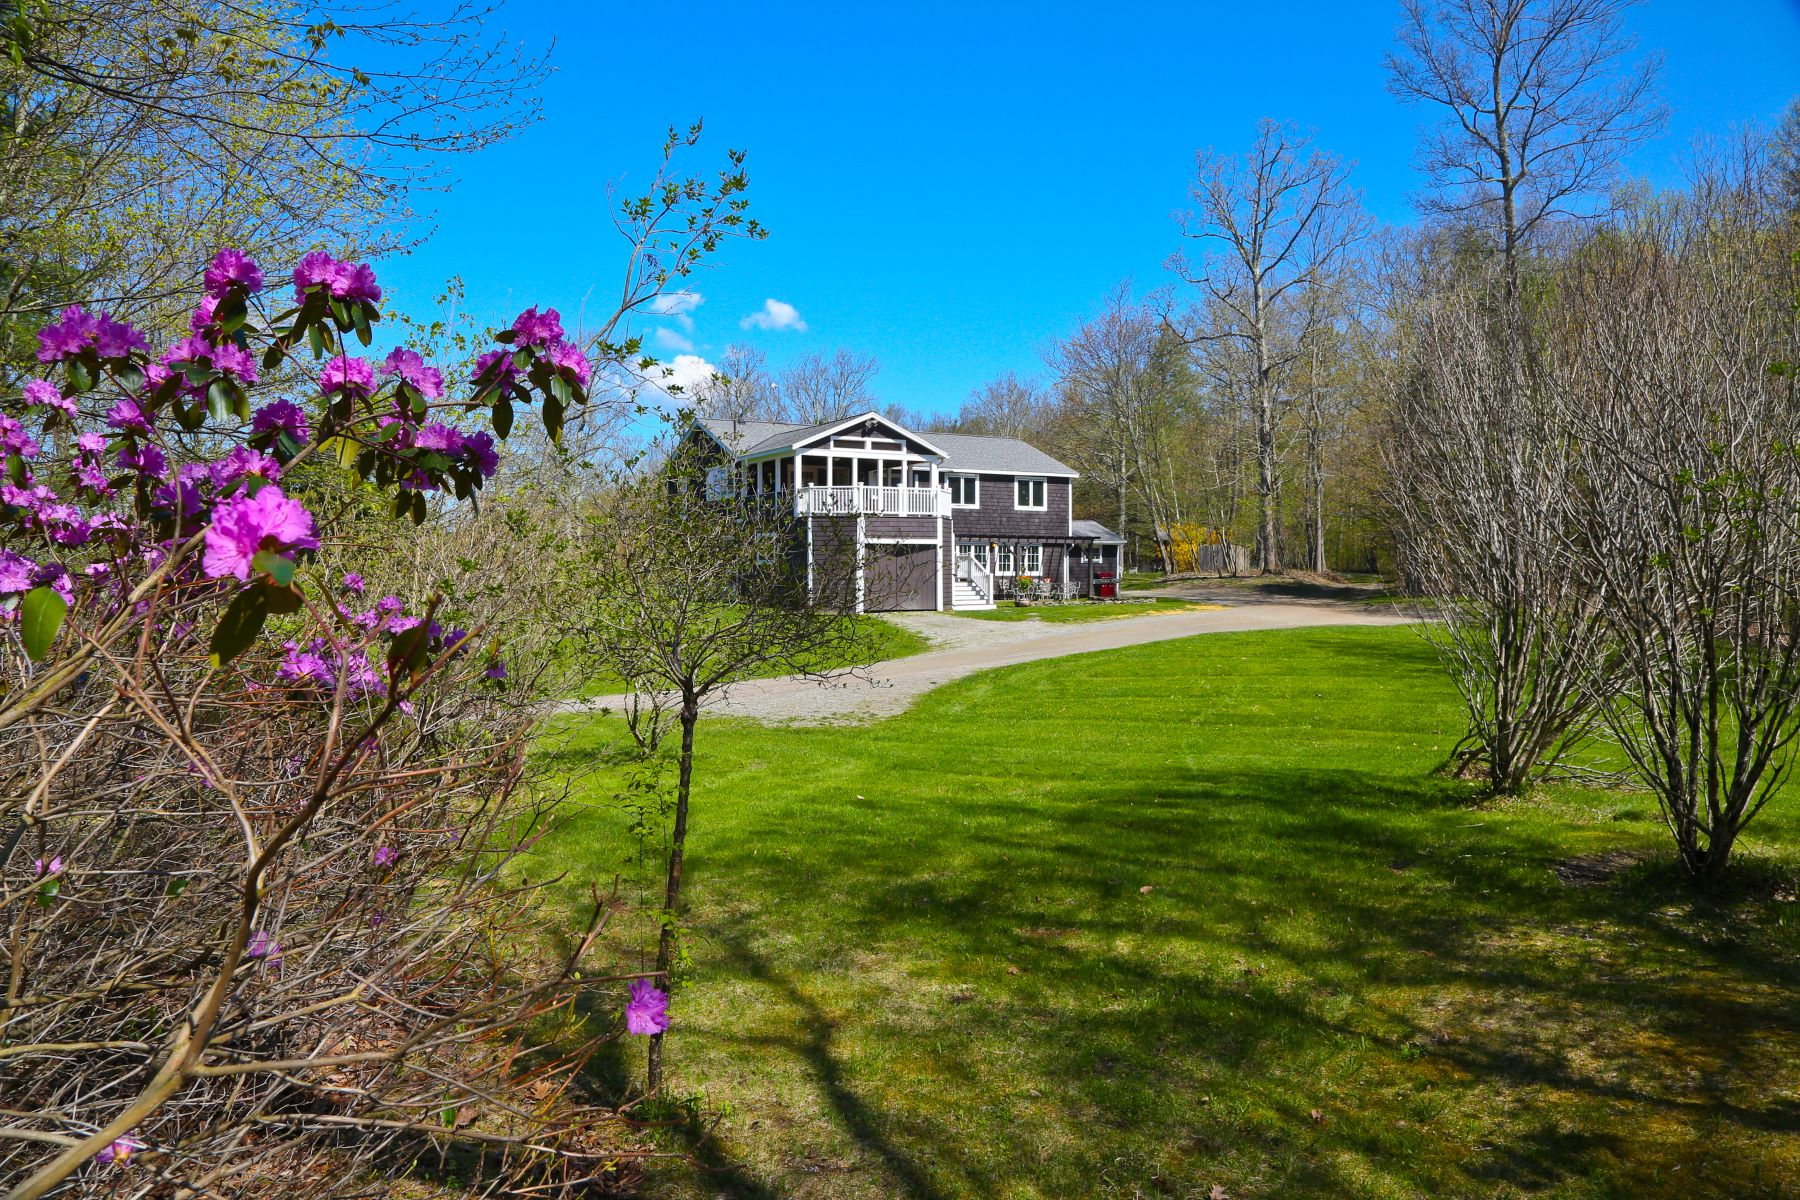 Single Family Home for Active at Seclusion, Privacy and Views 170 Green River Rd Alford, Massachusetts 01266 United States